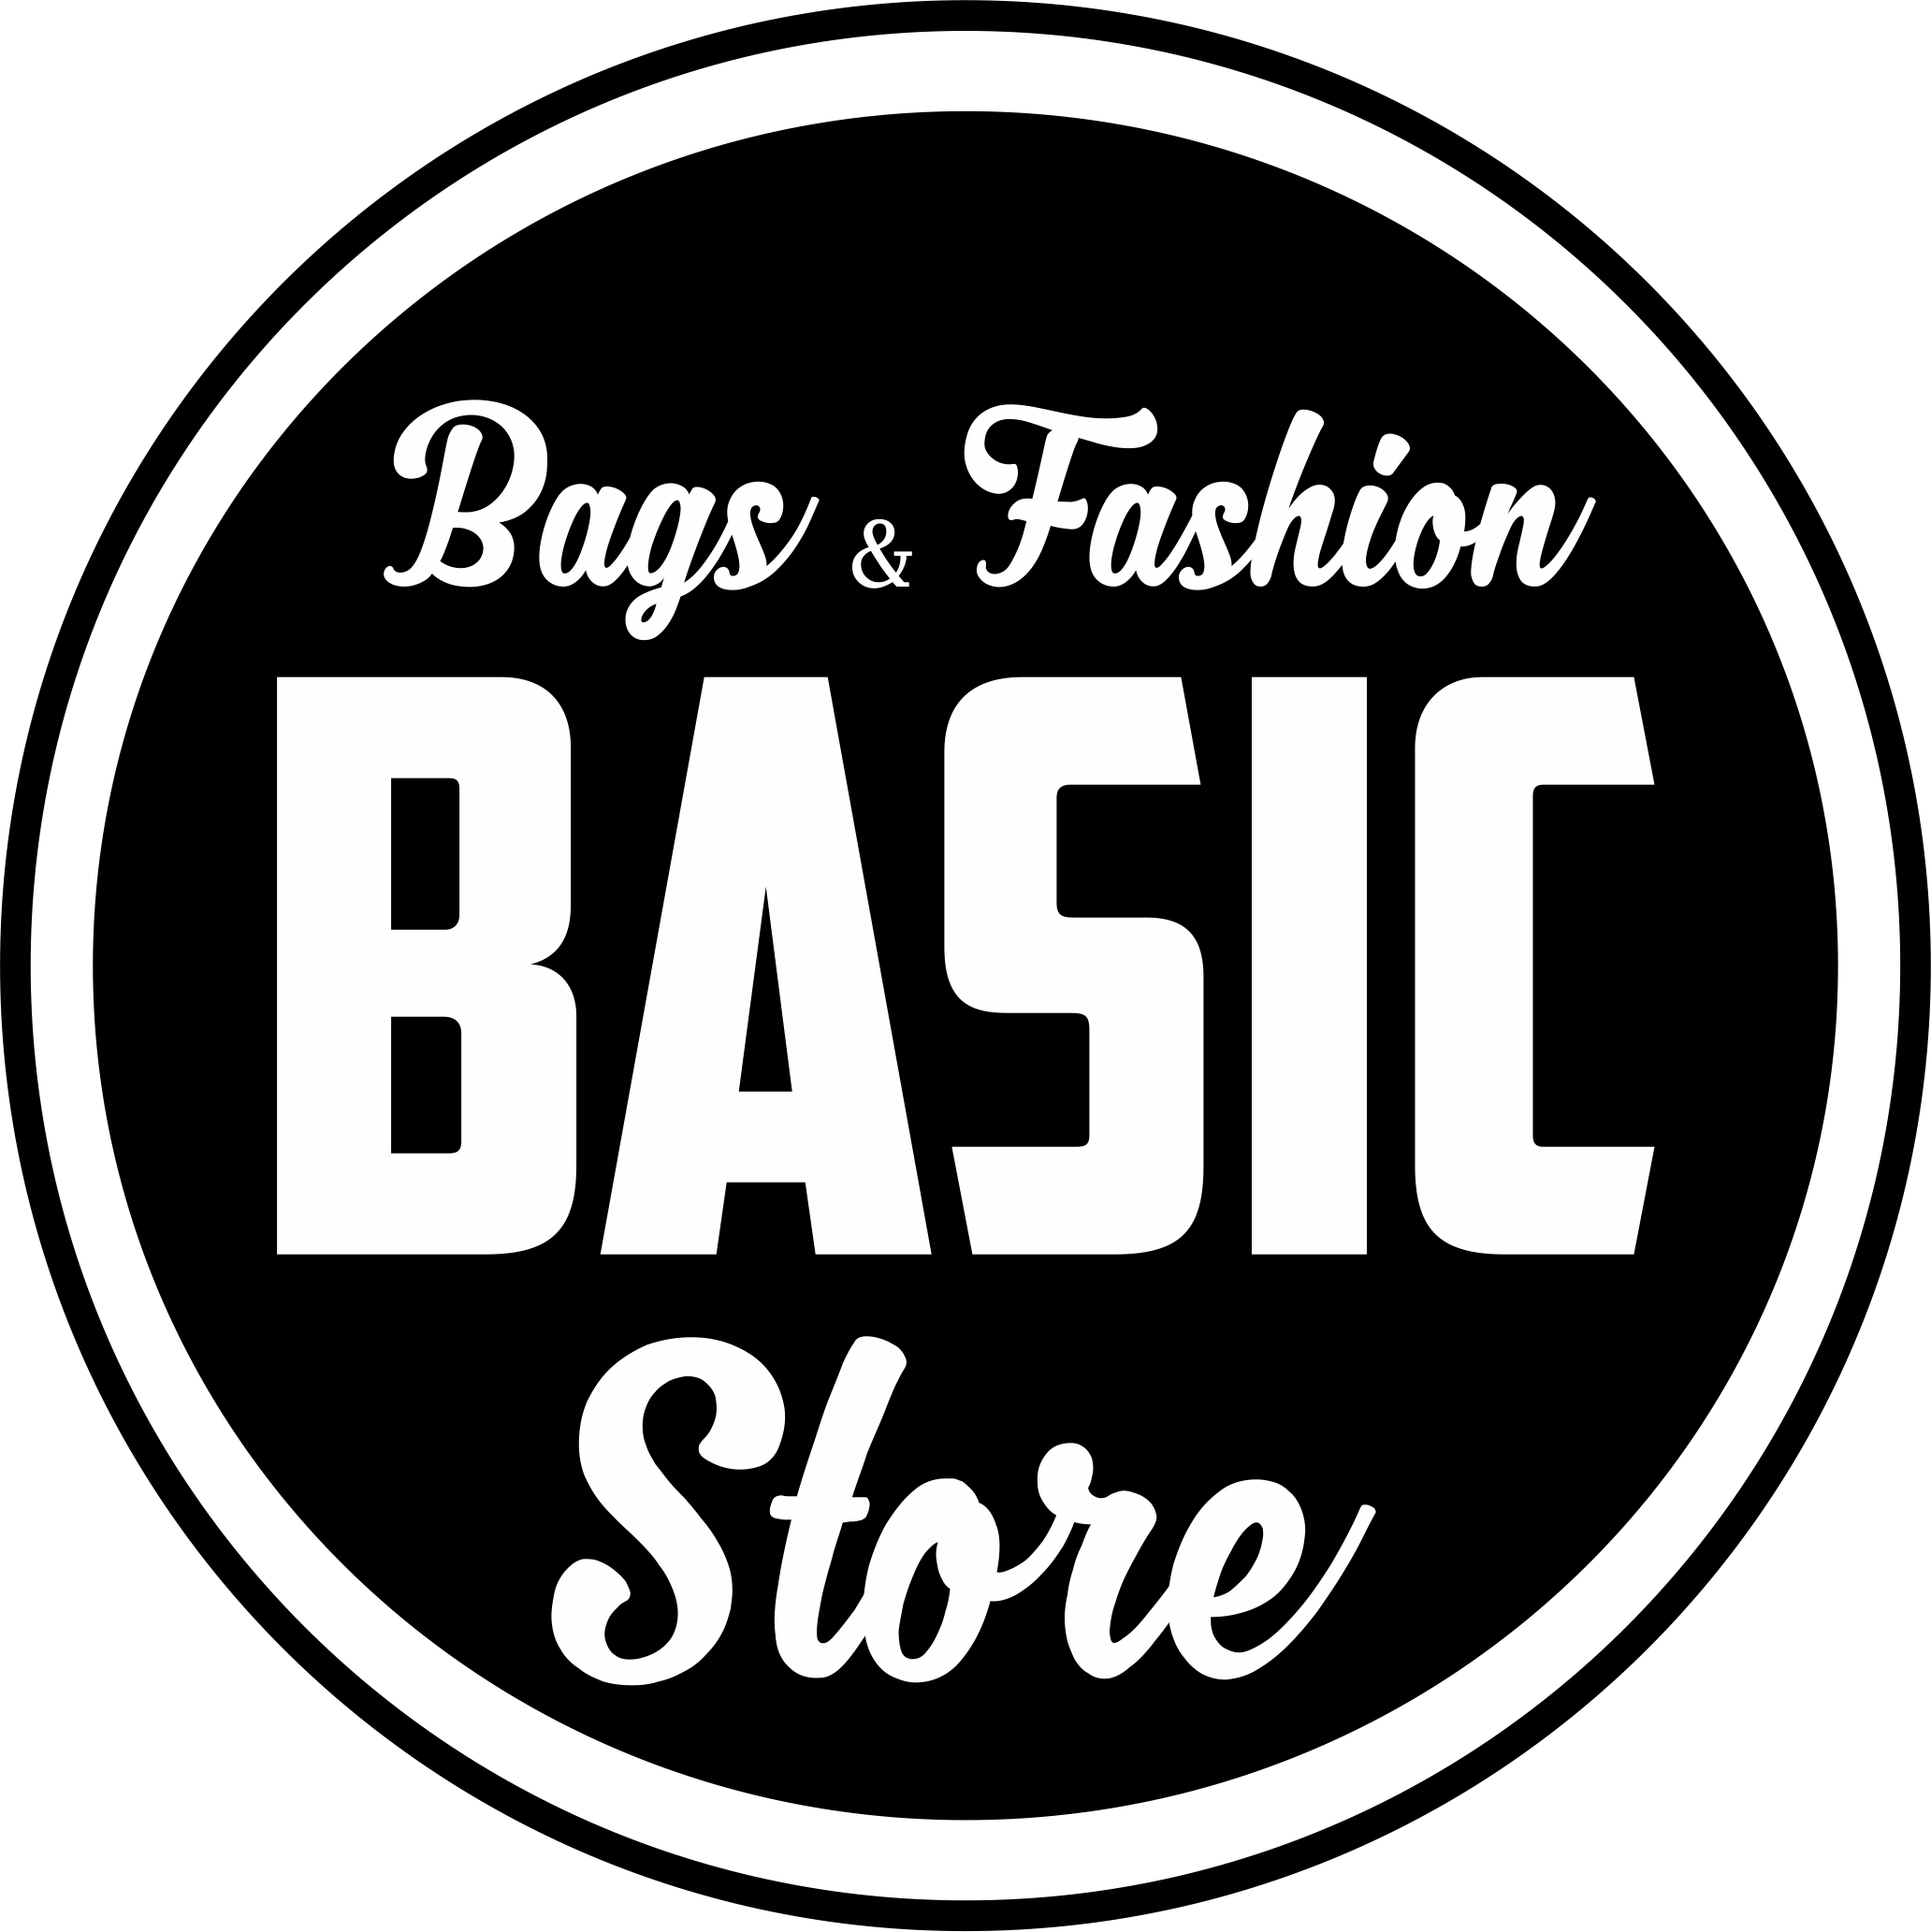 Basic Fashion Store